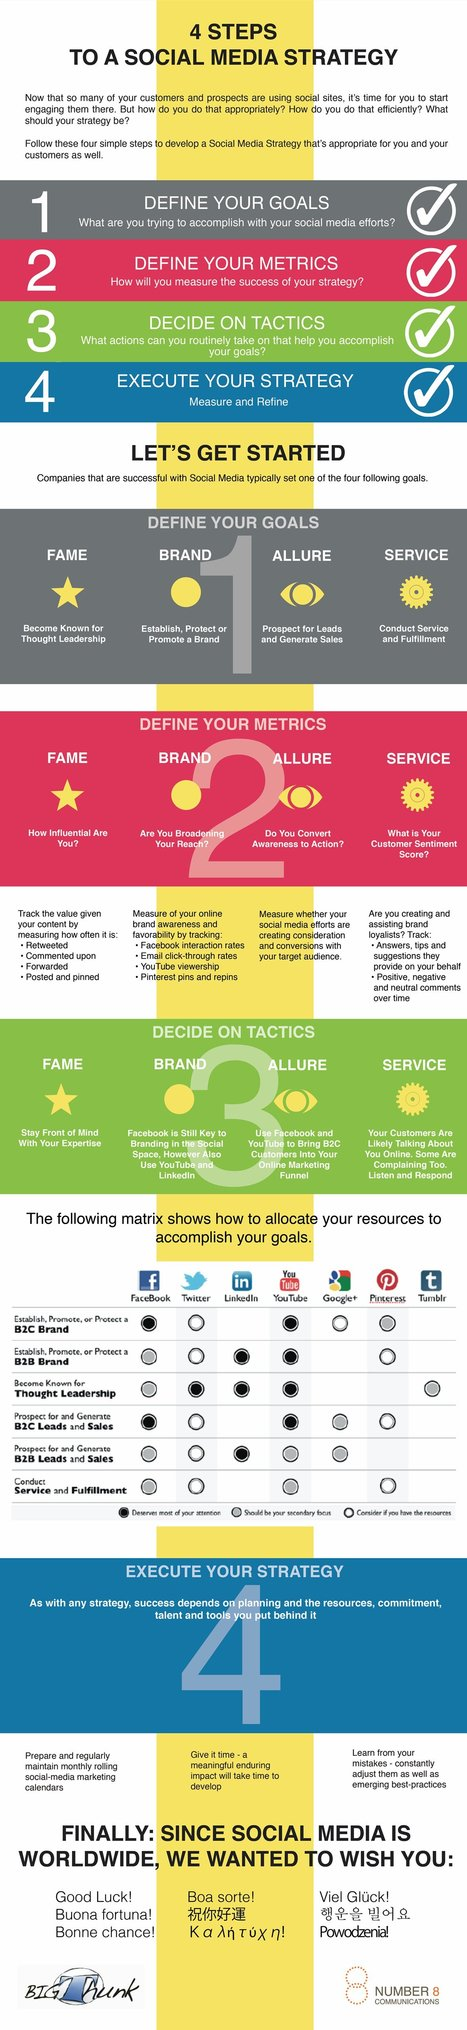 Infographic: The 4 Steps to Social Media Marketing | Social media | Scoop.it